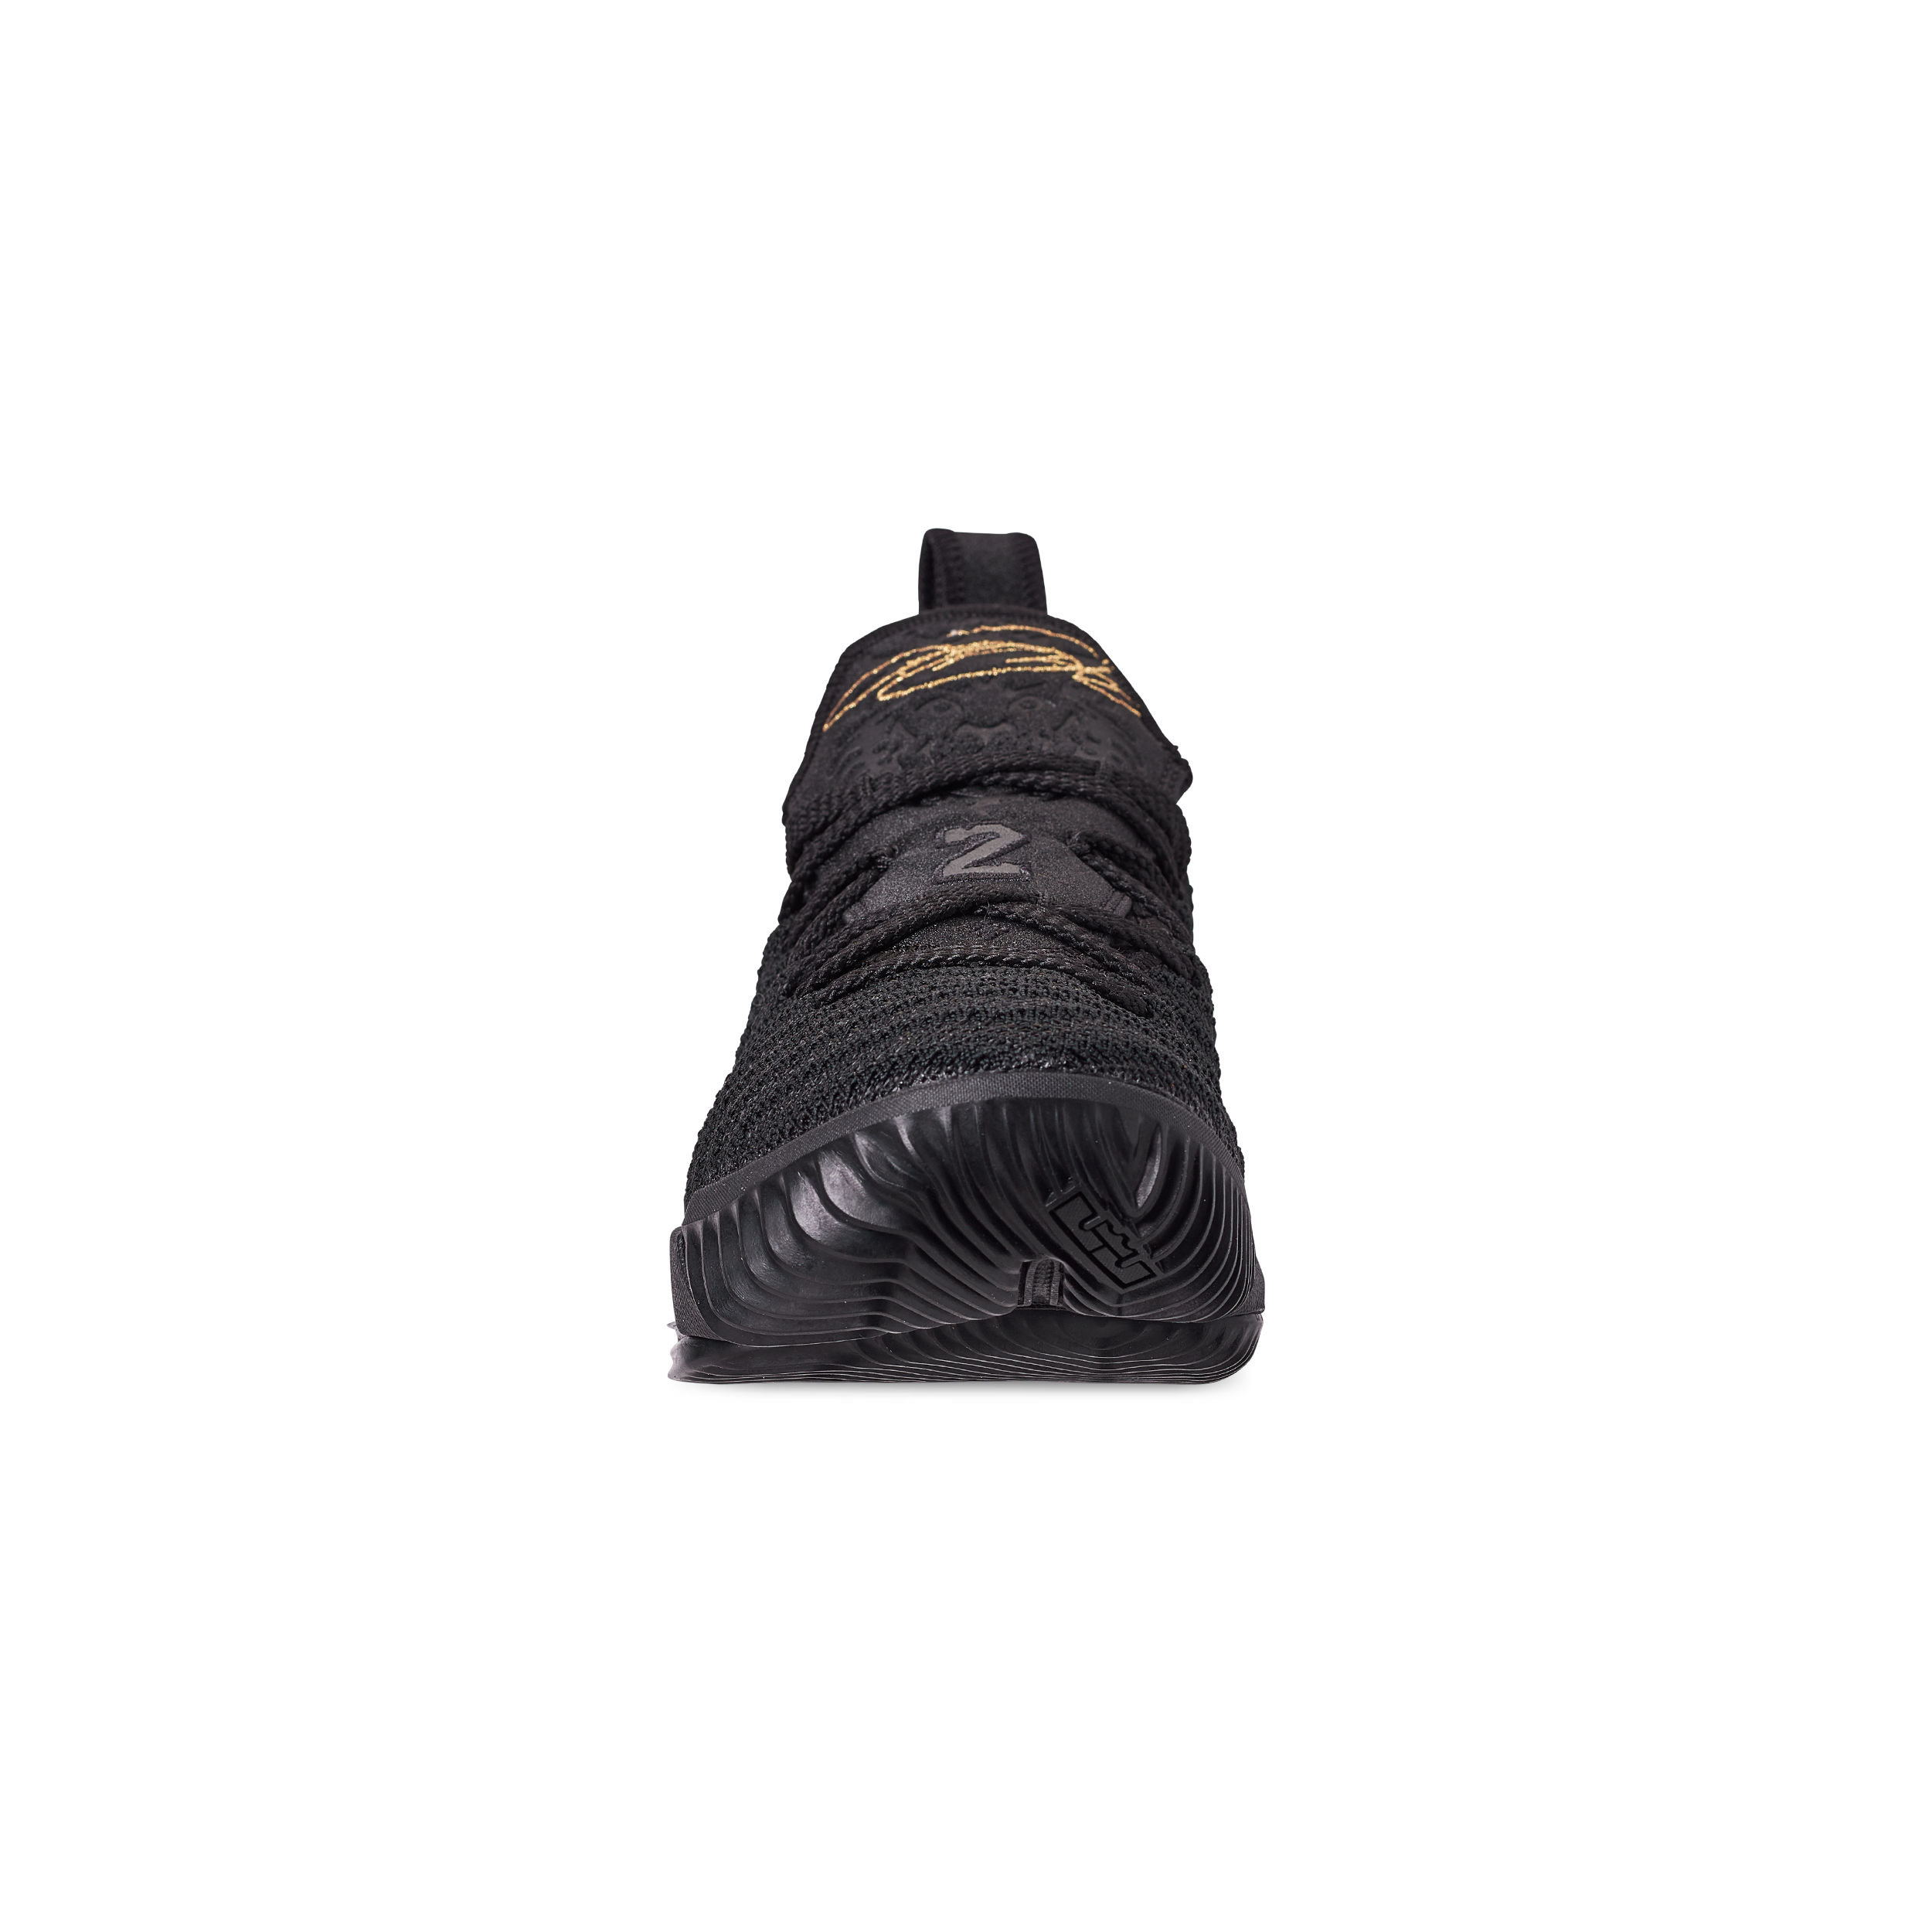 newest ac85d 66c7a NIKE LEBRON 16 GS I'M KING BLACK : METALLIC GOLD 4 - WearTesters